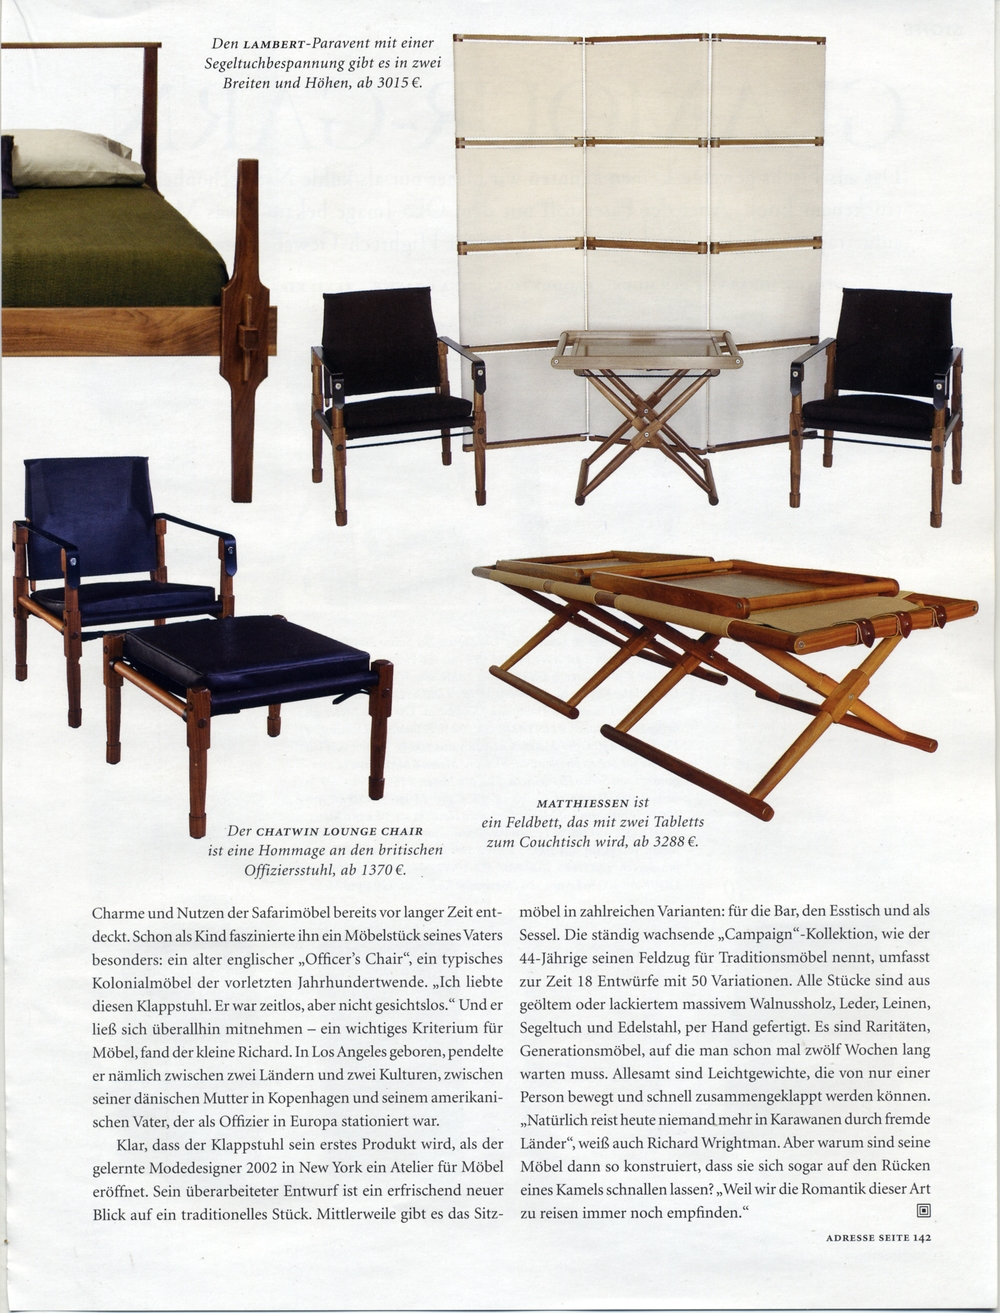 See: Chatwin Lounge Chair, Matthiessen Cot/Coffee Table, Matthiessen Tray Table, and Lambert Screen